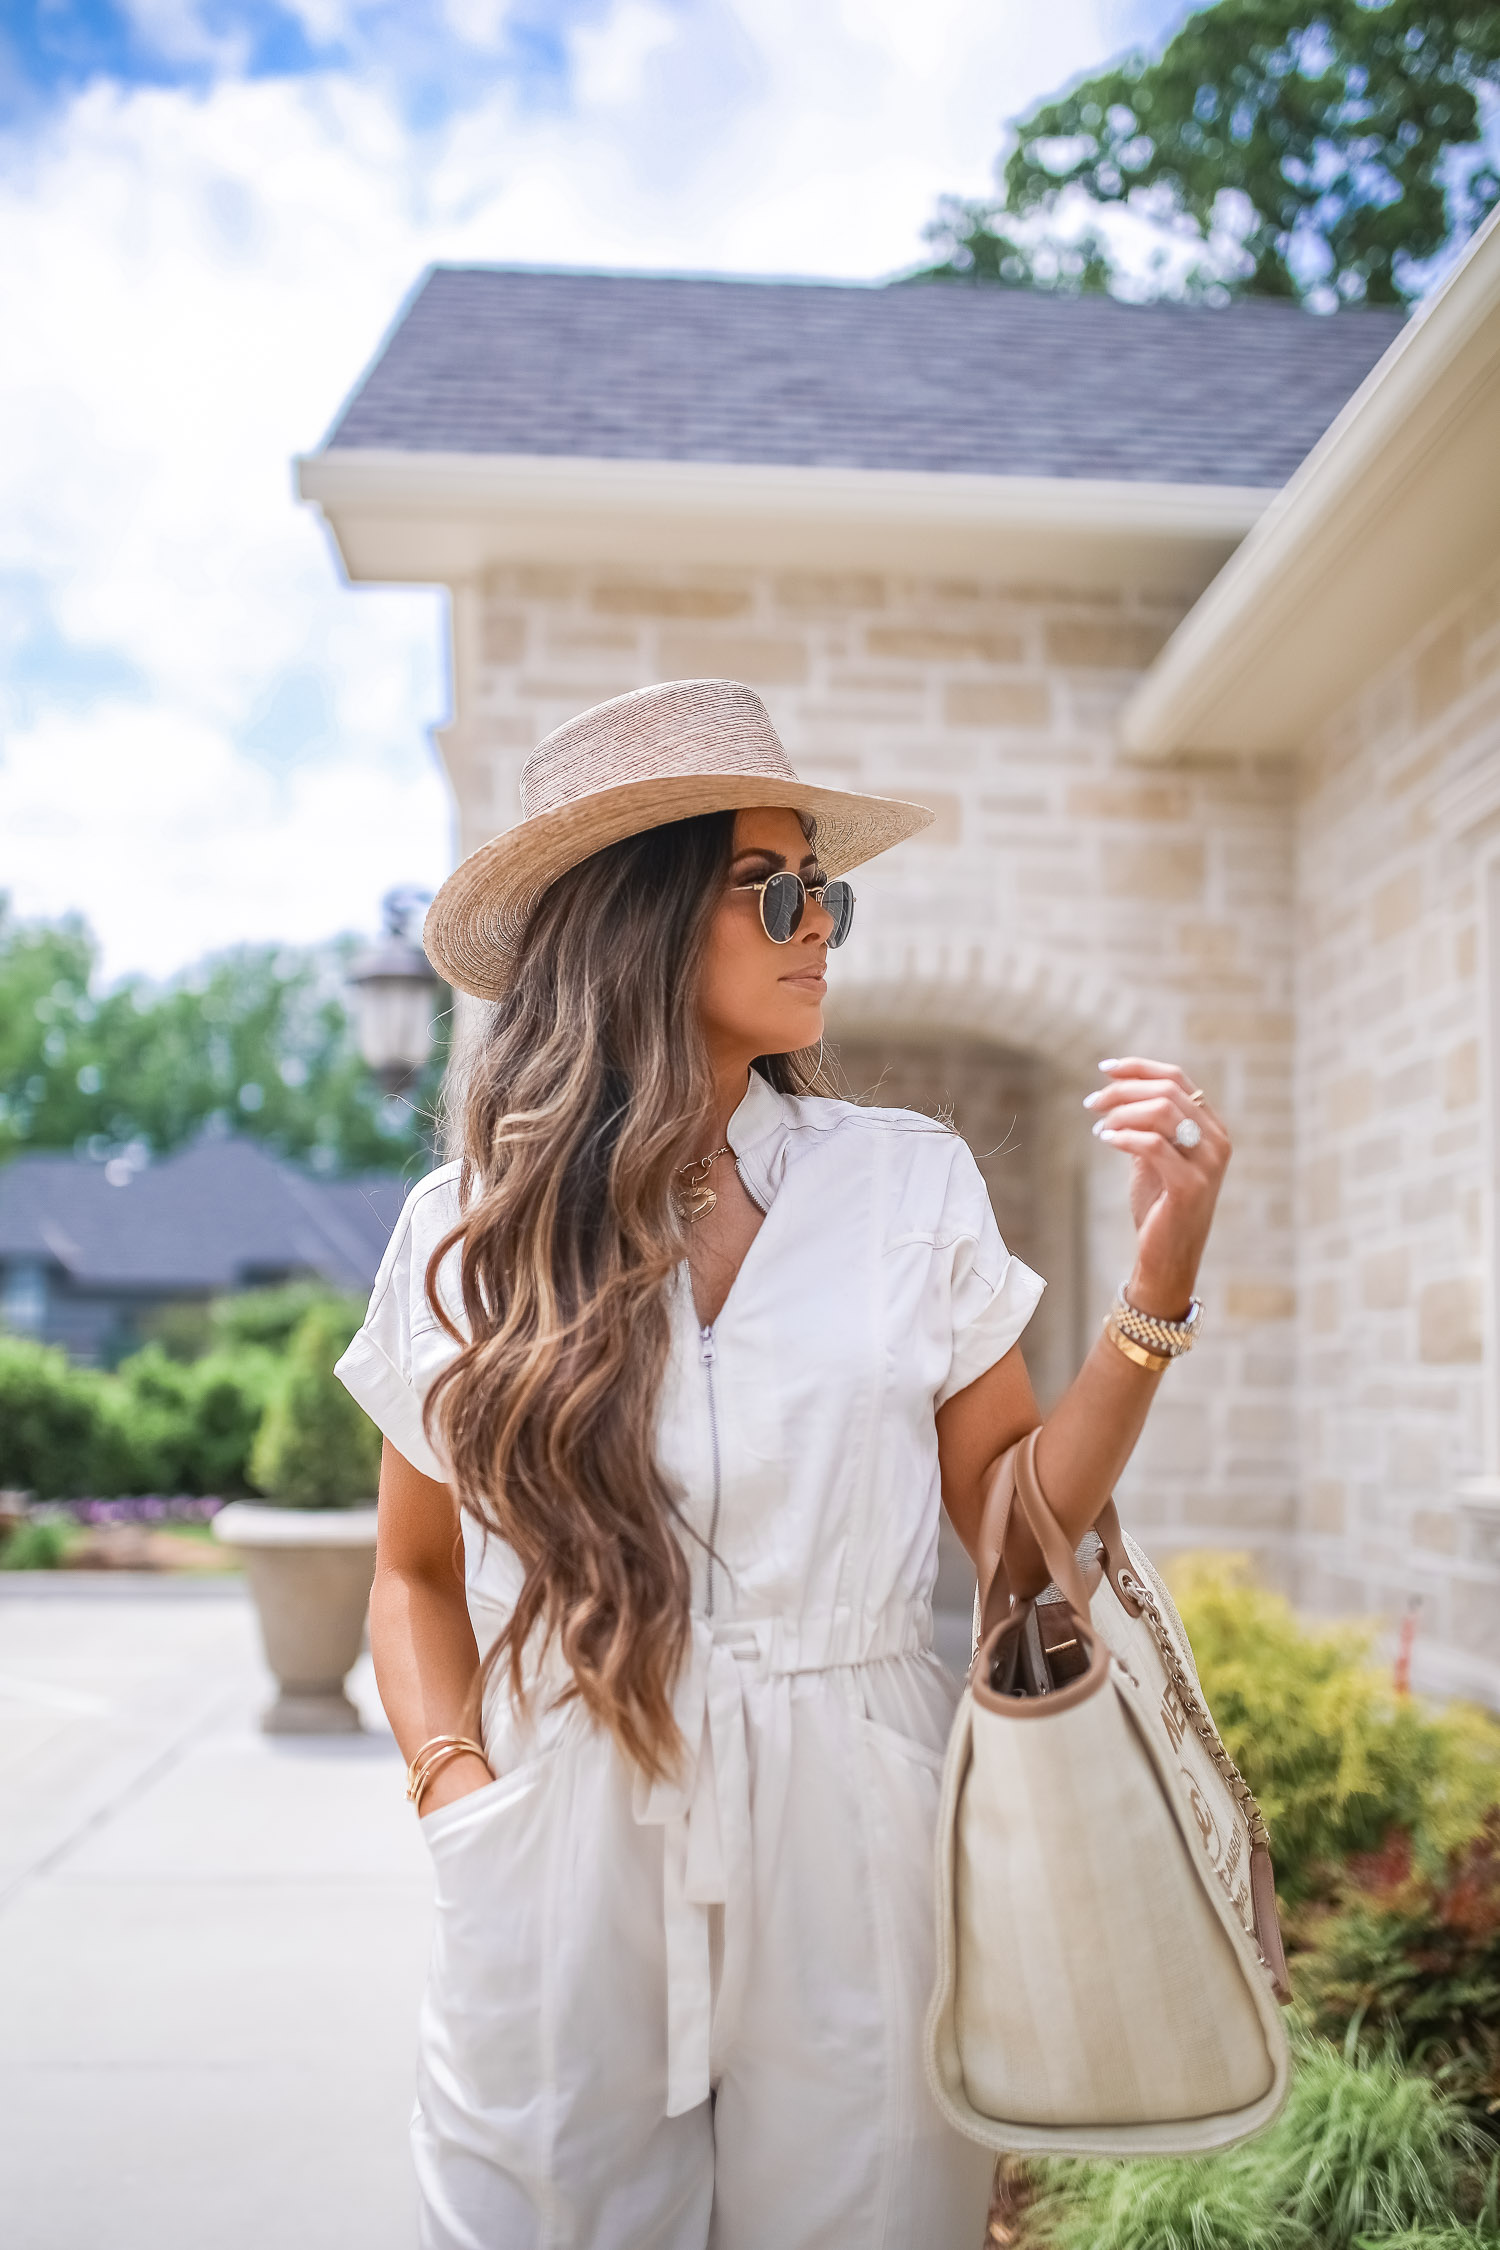 Off White Jumpsuit by popular US fashion blog, The Sweetest Thing: image of a woman wearing a Express Zip Front Utility Jumpsuit, Nordstrom heeled sandals, Express Large Metal Hoop Earrings, Cartier jewelry, a straw hat, and holding a Chanel bag.